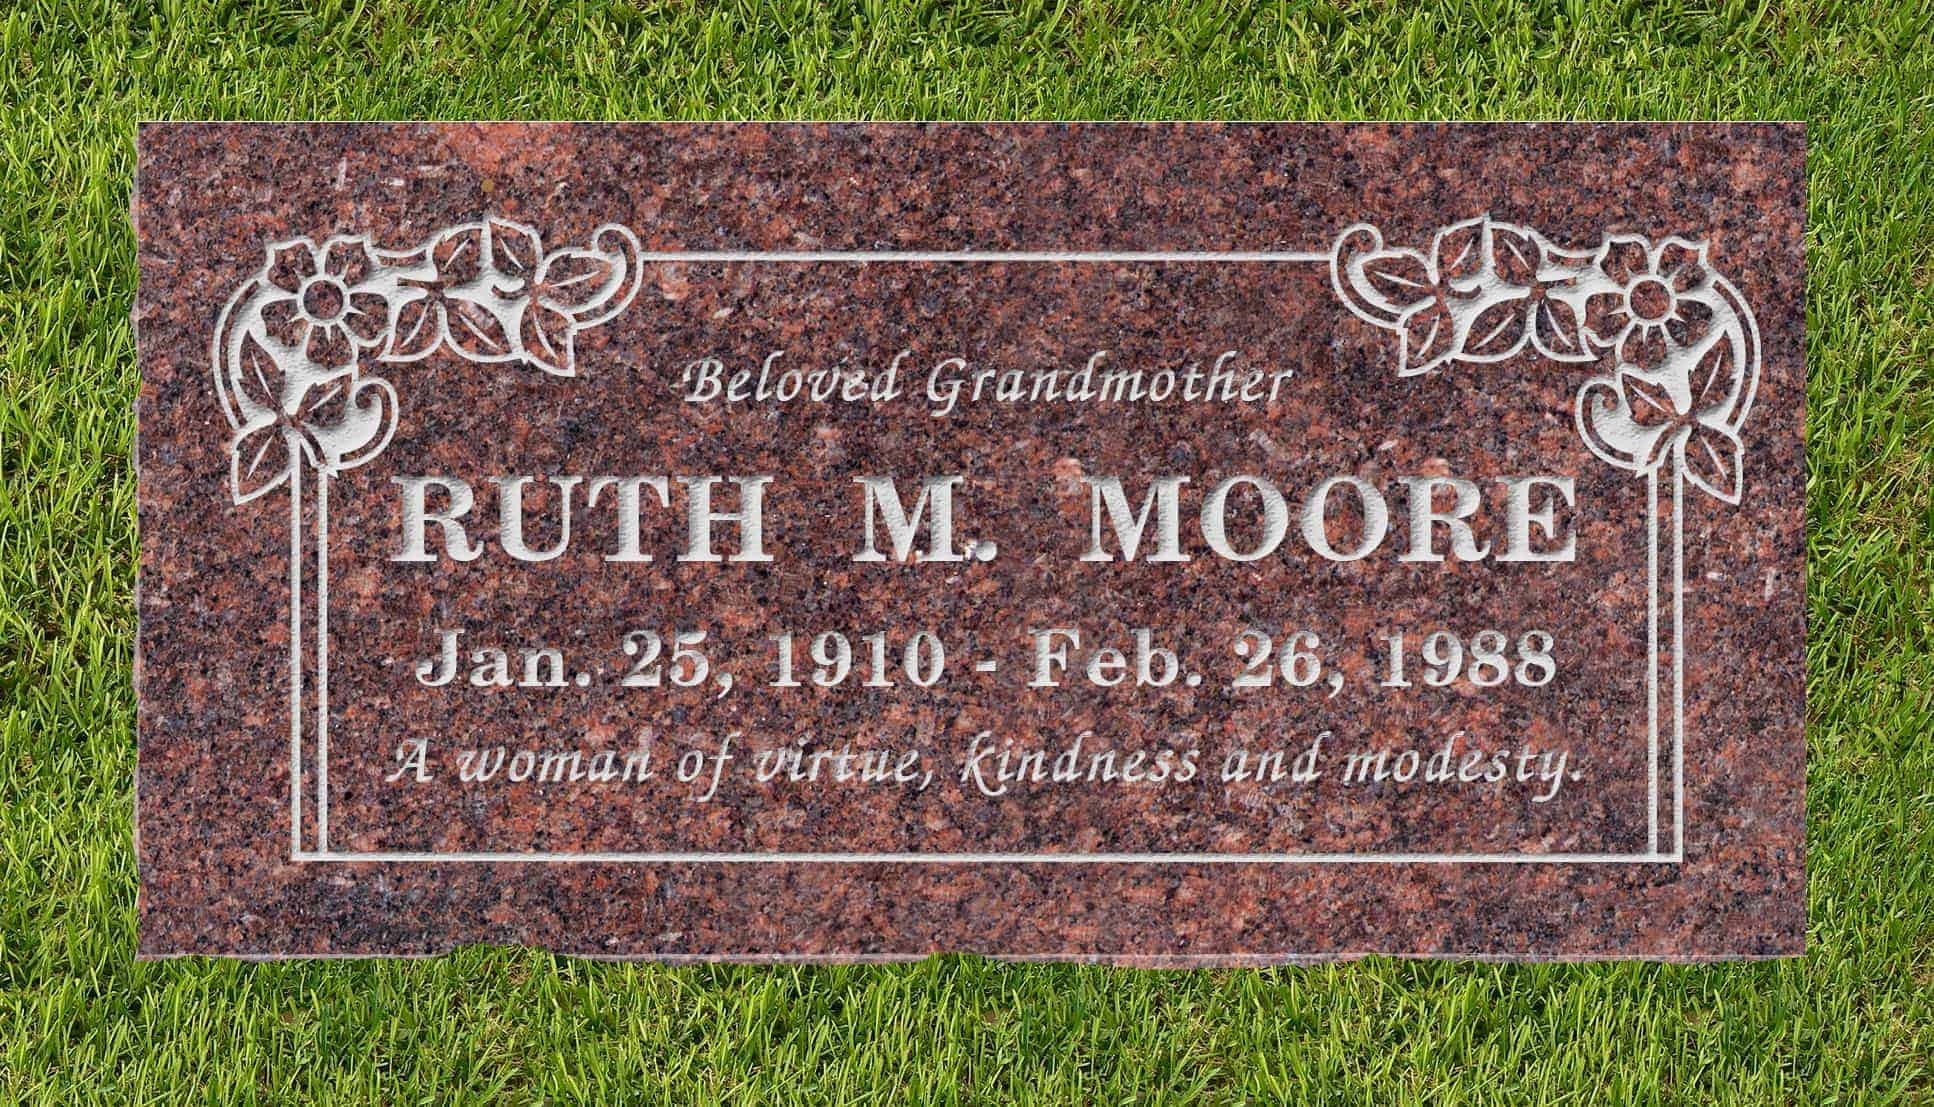 24inch_x_12inch_x_3inch_Flat_Granite_Headstone_in_Mahogany_with_design_B-21_installed_in_ground